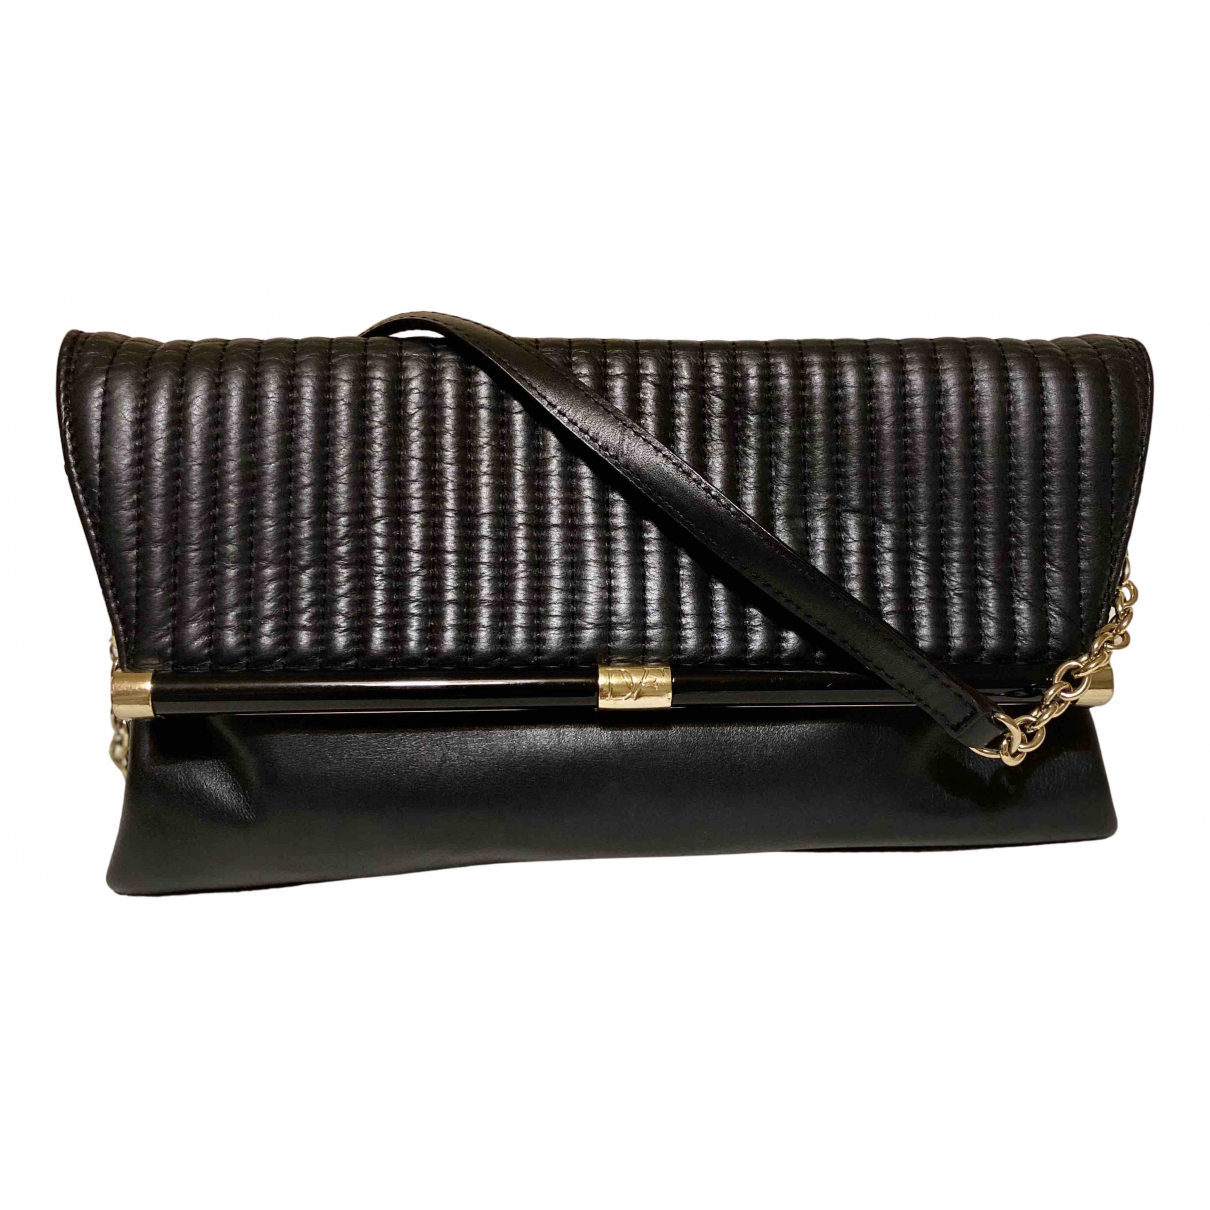 Diane Von Furstenberg N Black Leather handbag for Women N